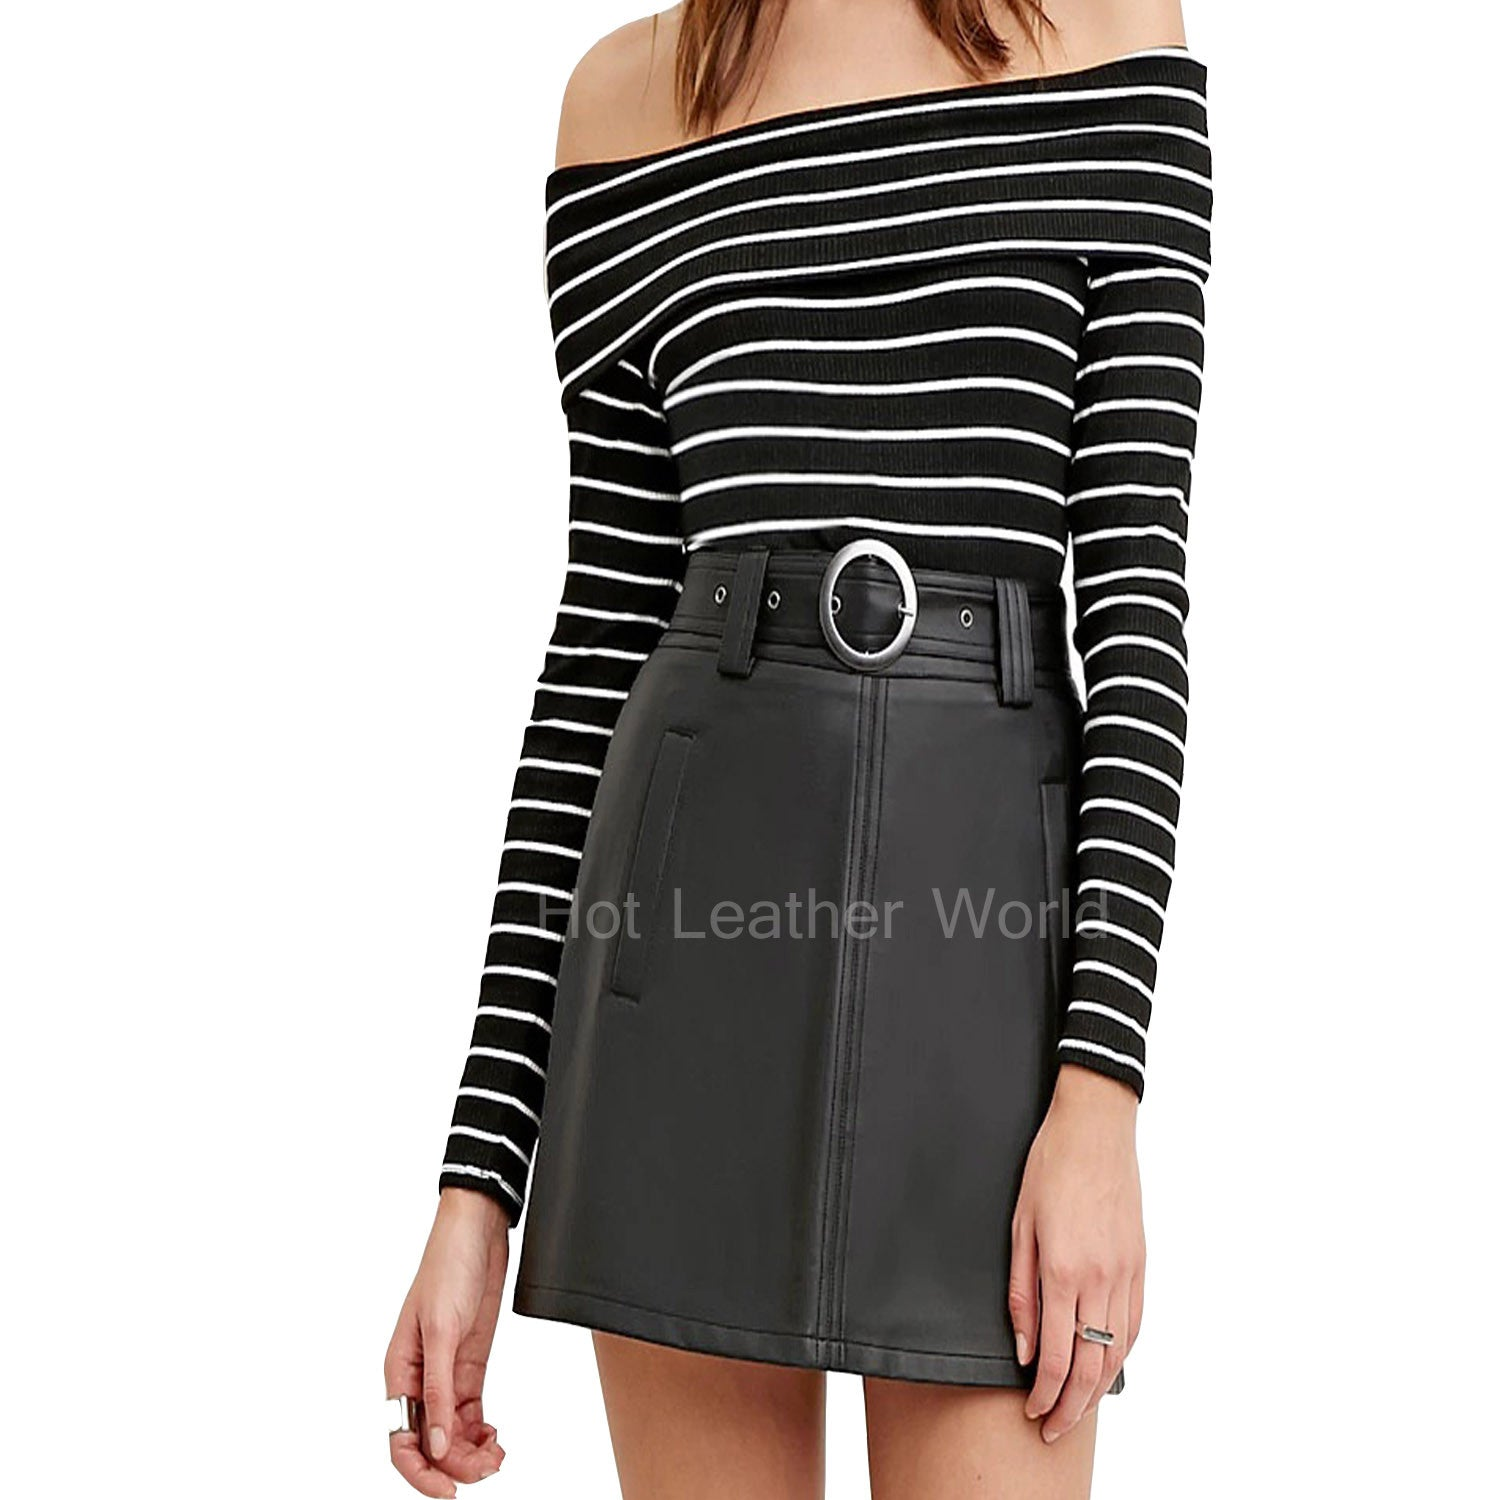 Belted Leather Skirt For Women -  HOTLEATHERWORLD